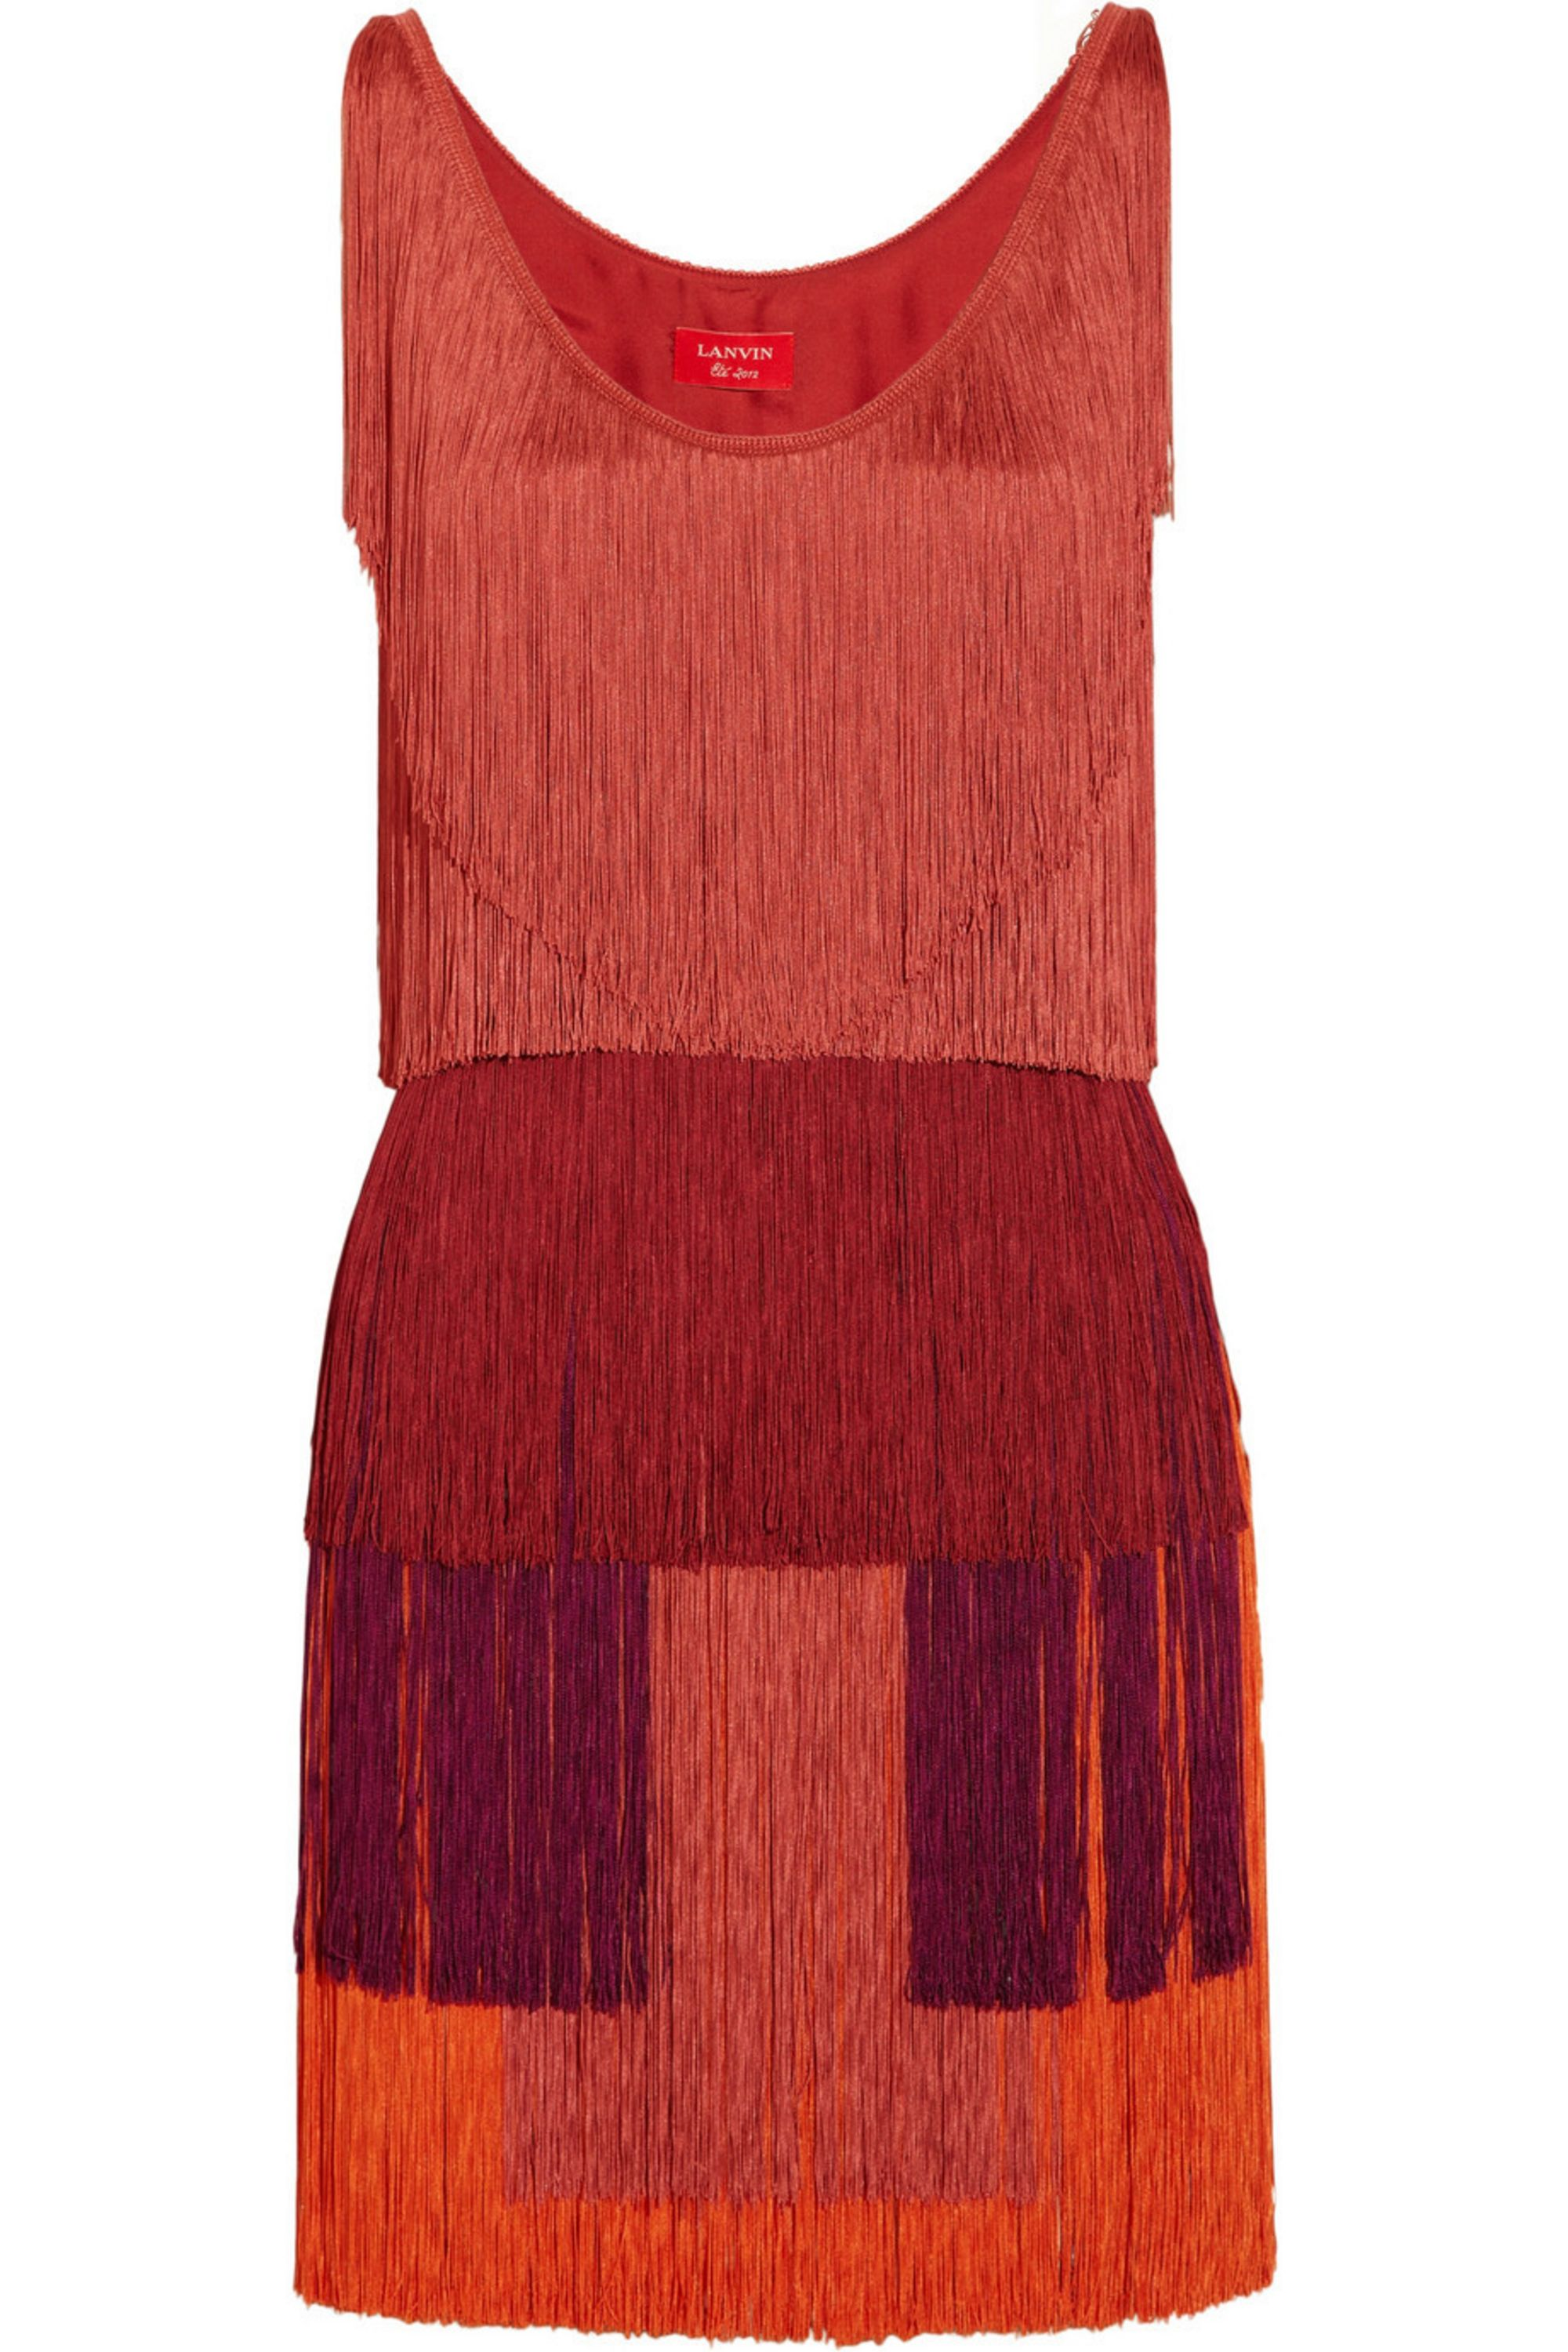 Lanvin Tiered fringed silk-satin dress